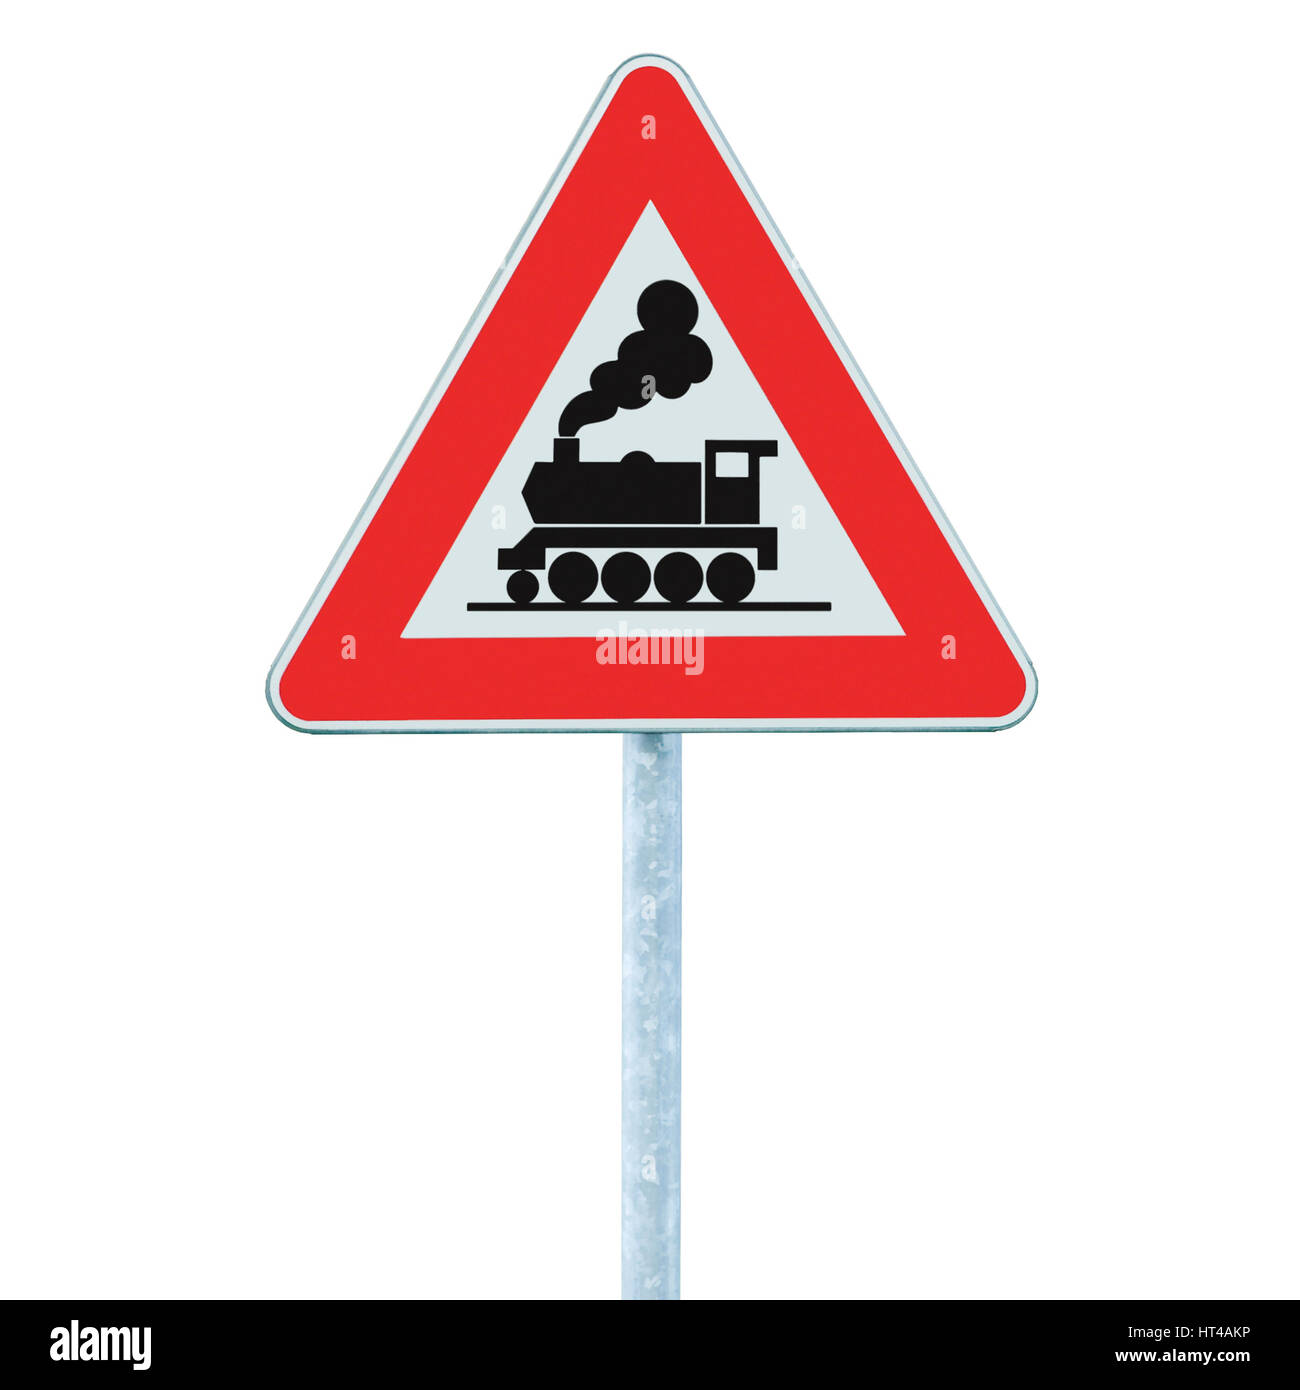 Railroad Level Crossing Road Sign without barrier or gate ahead the road, beware of train roadside signage, roadsign - Stock Image